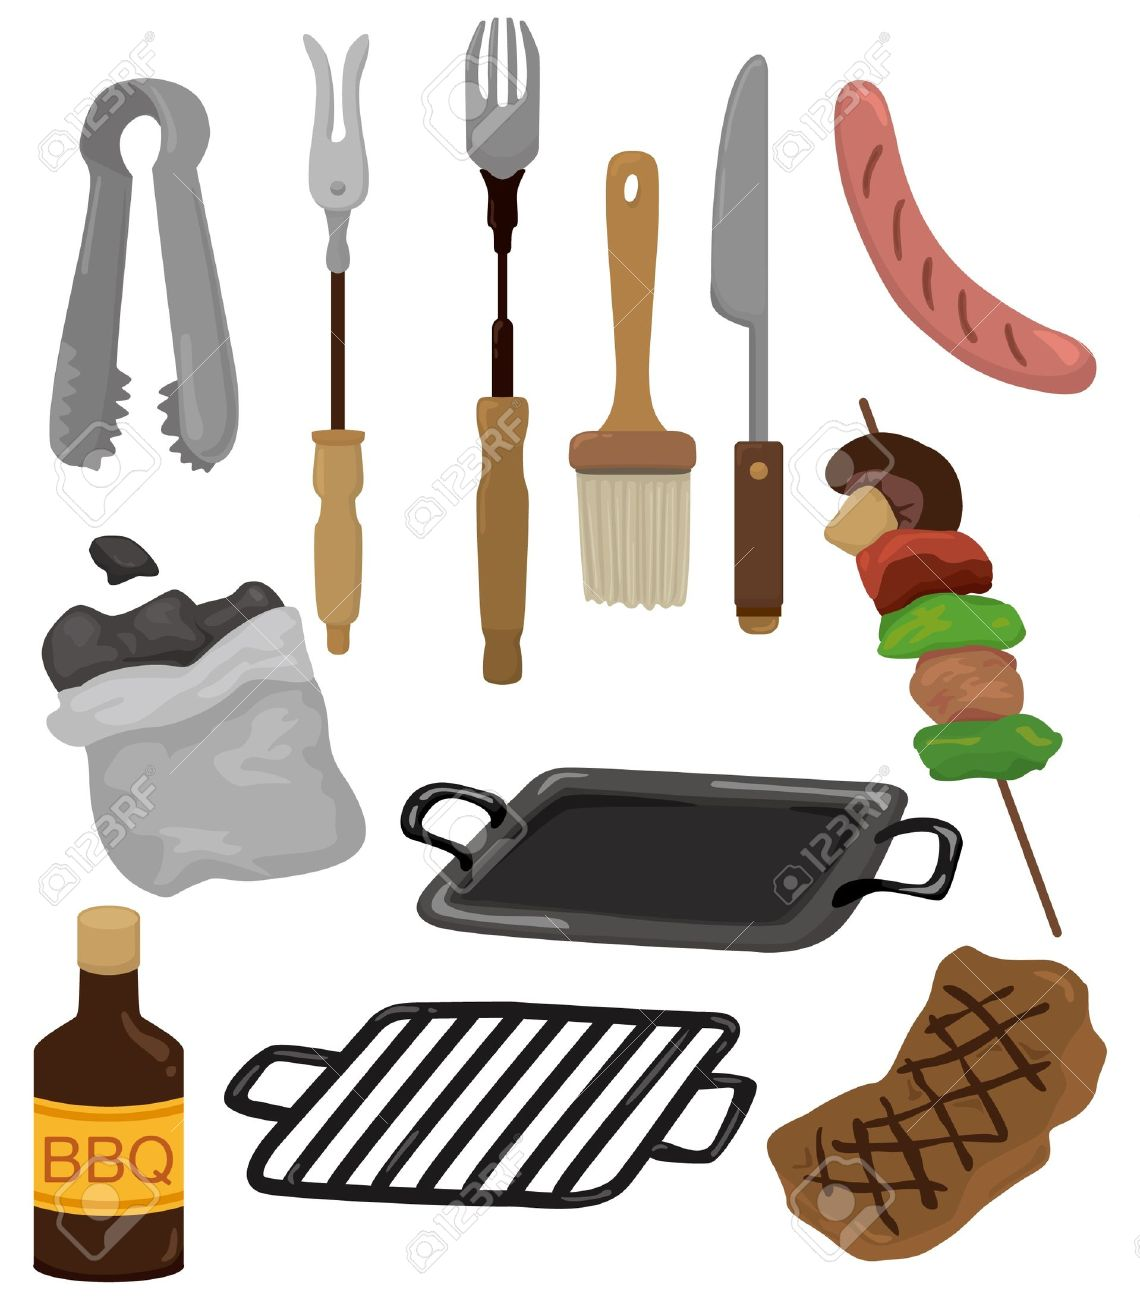 grilling tools cartoon barbeque party tool set icon - Grilling Tools